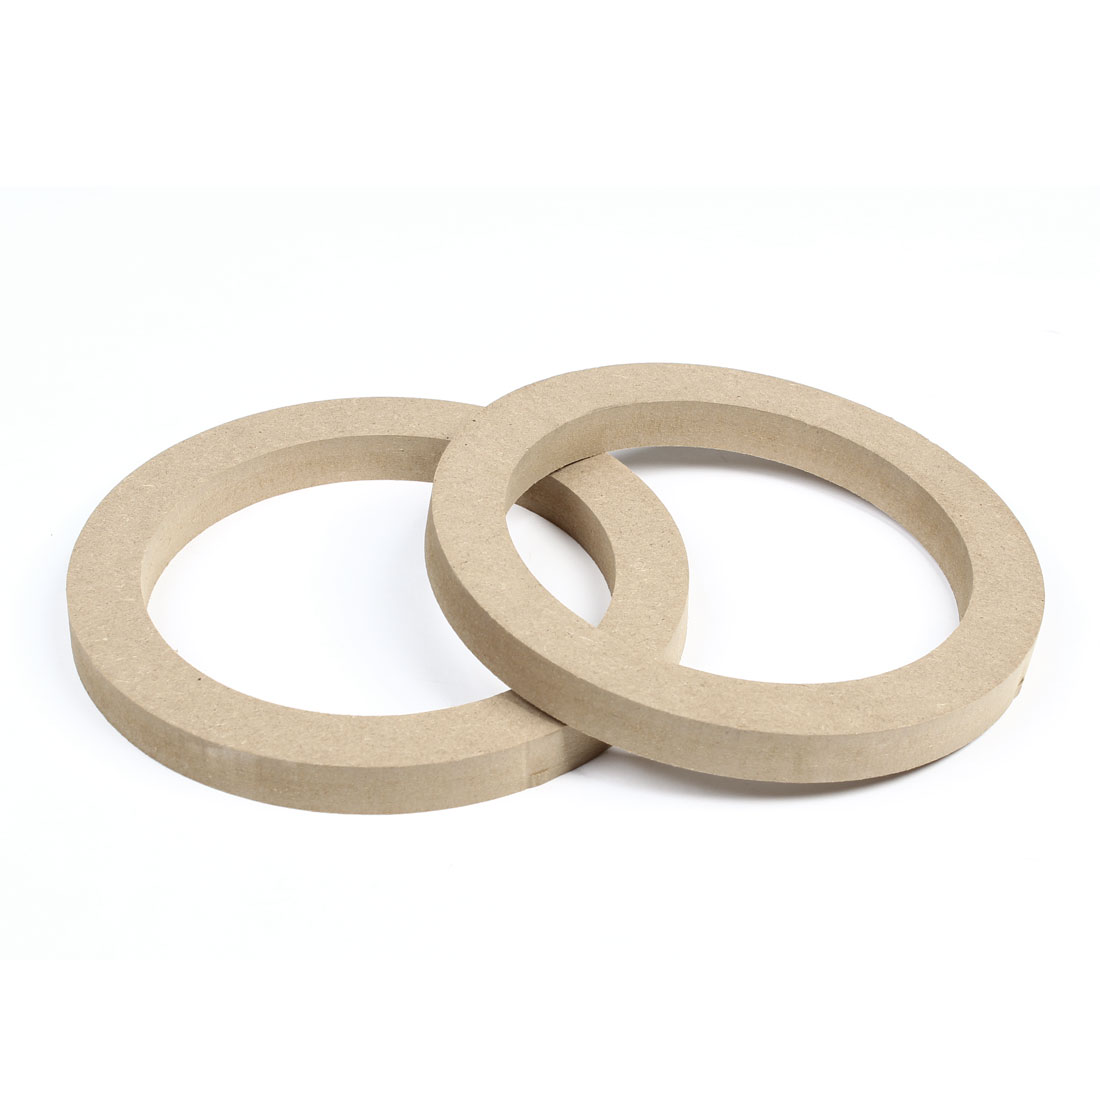 "2 Pcs Universal Khaki 5.6"" Wooden Speaker Spacers 18mm Depth for Auto Car"